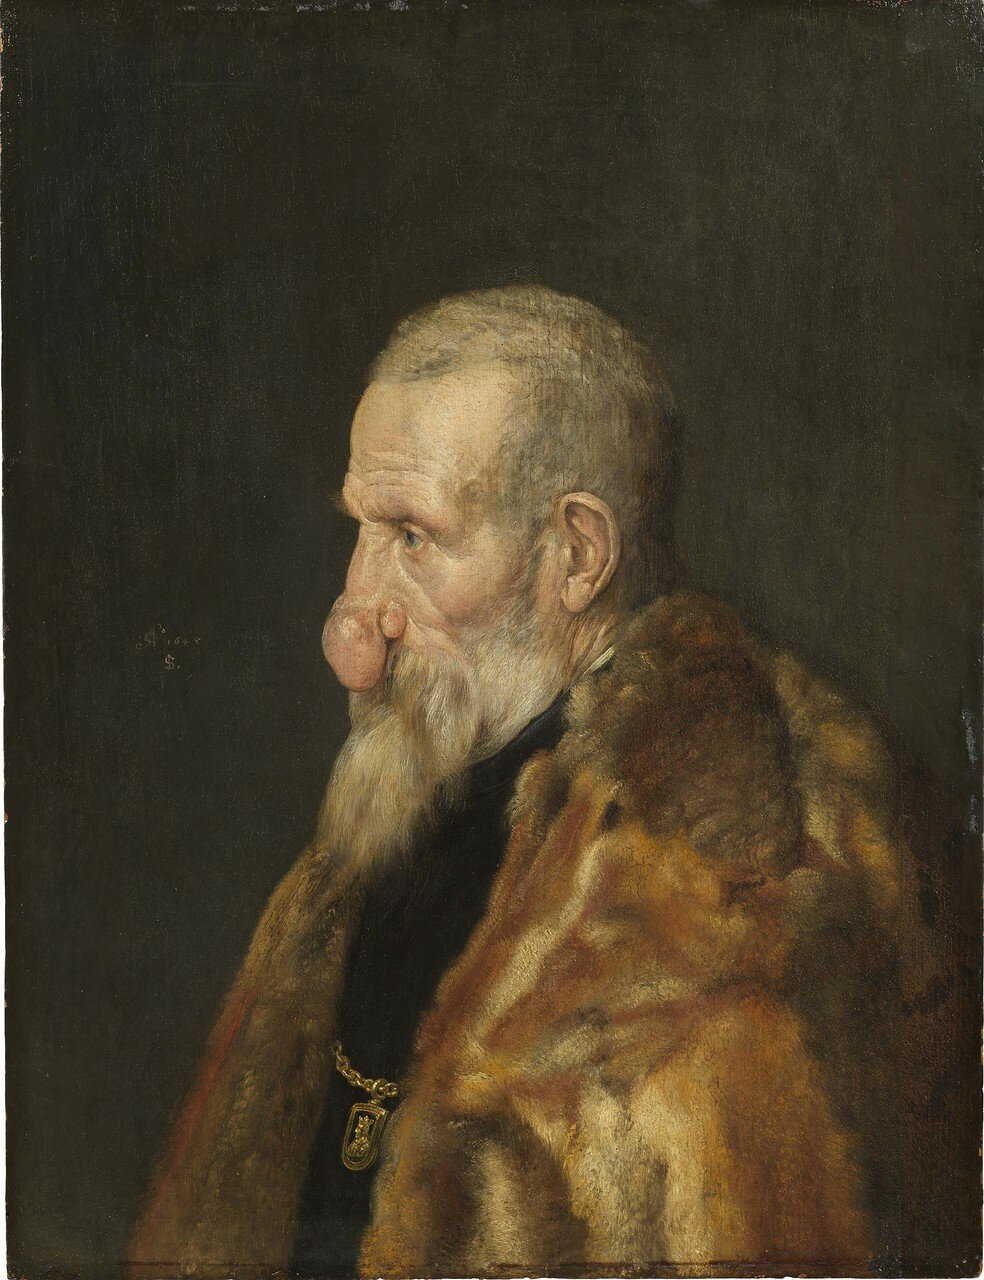 Old_Man_with_a_Growth_on_his_Nose_(Monogrammist_I.S.)_-_Nationalmuseum_-_17648.jpg